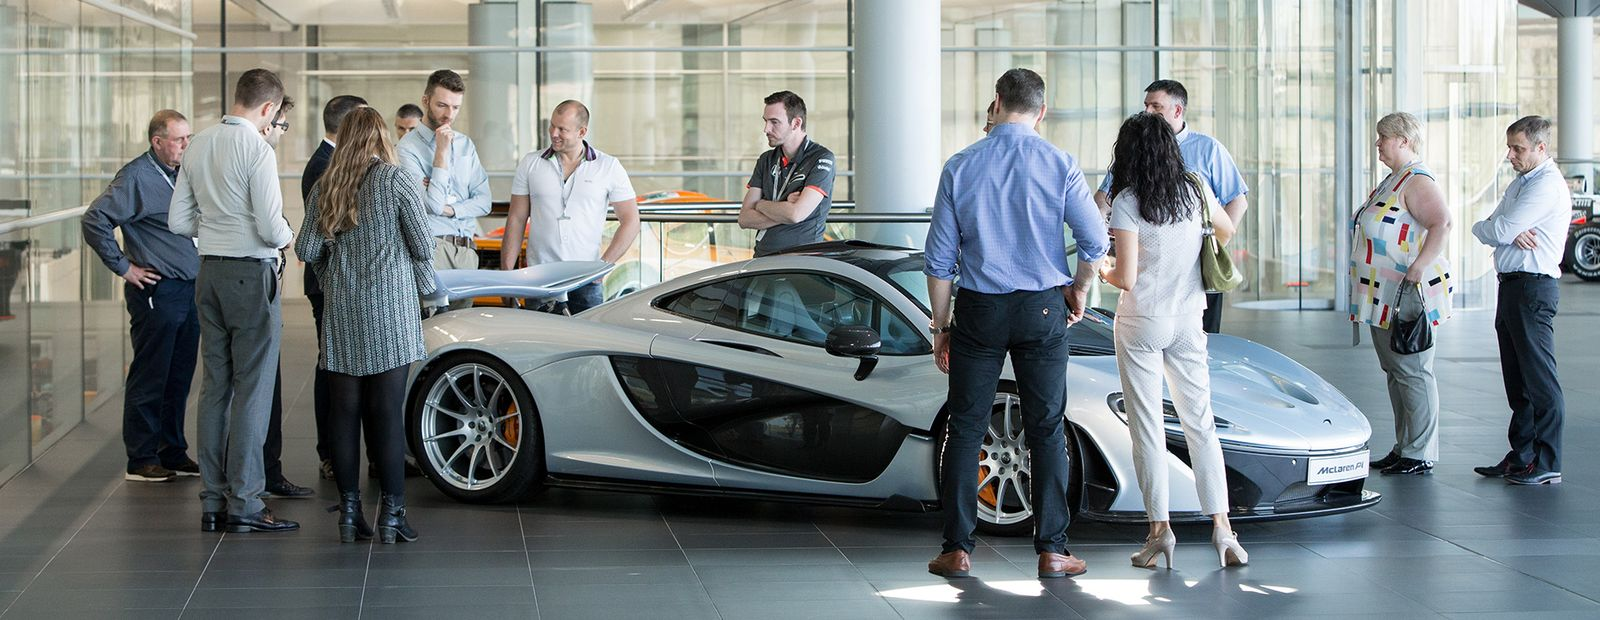 mclaren formula 1 - mclaren technology centre tour: may 25th